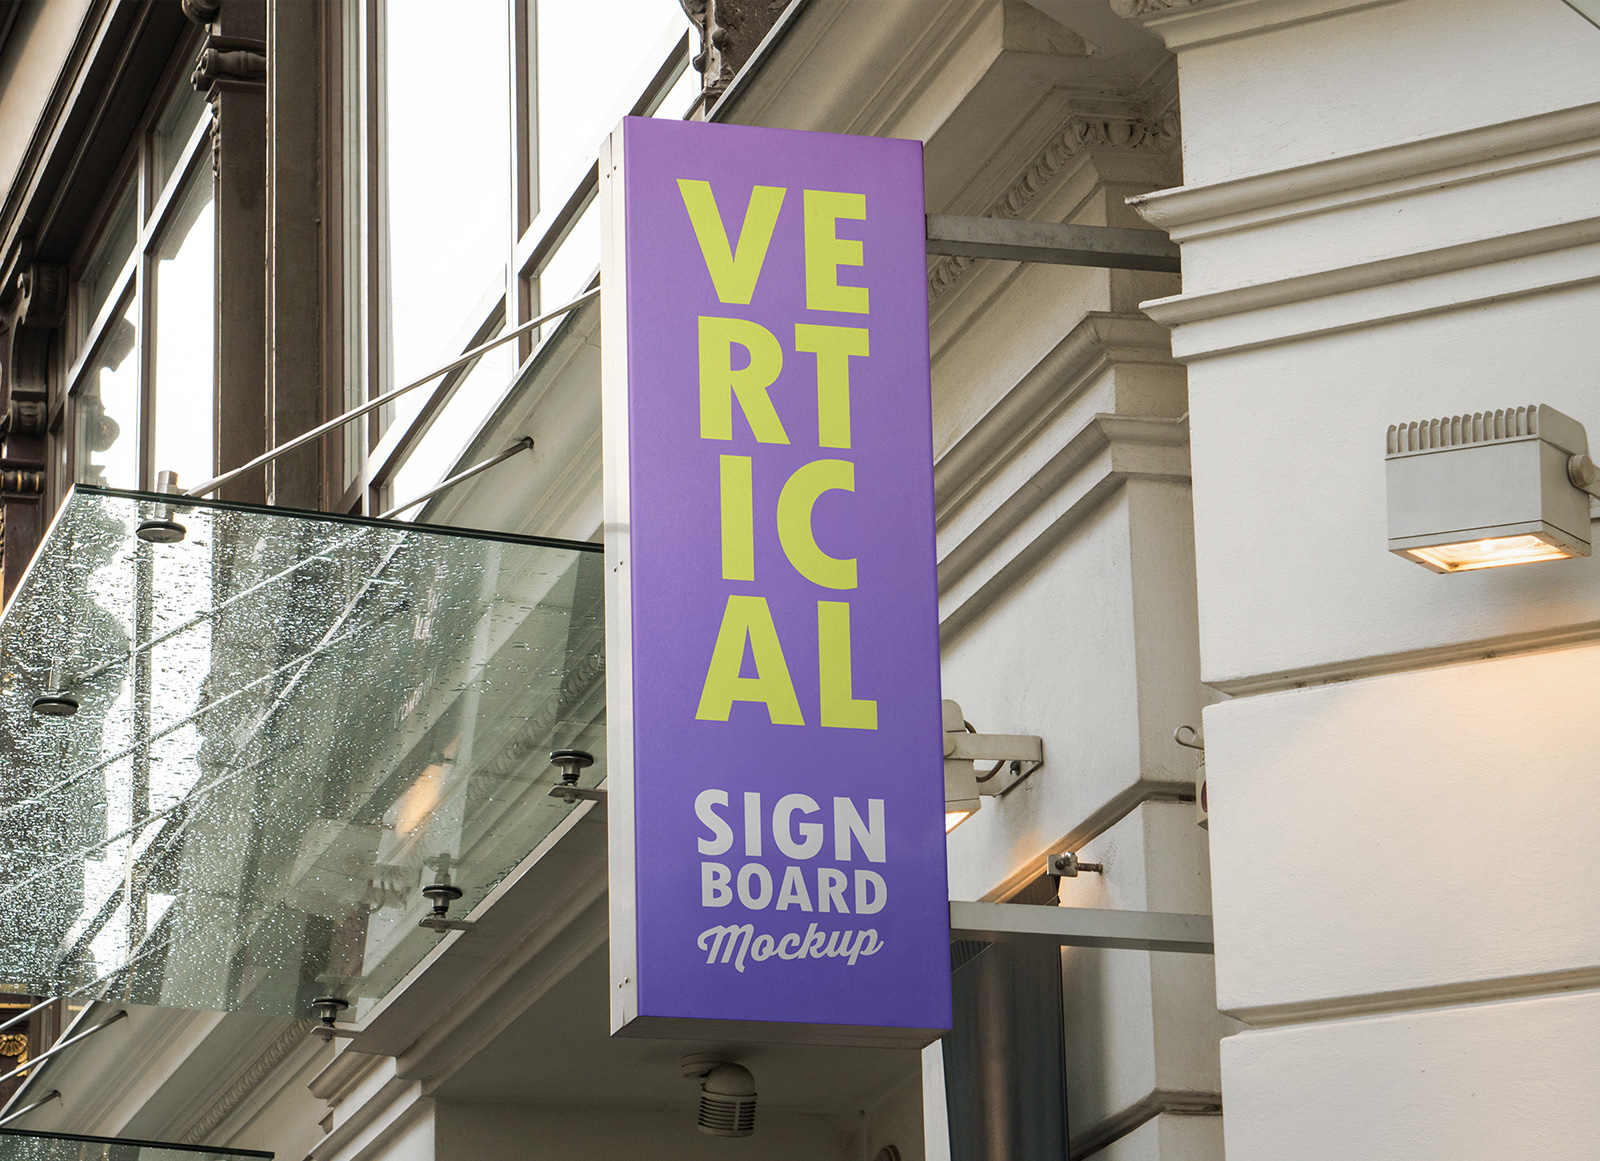 Free-Wall-Mounted-Vertical-Signboard-Mockup-PSD